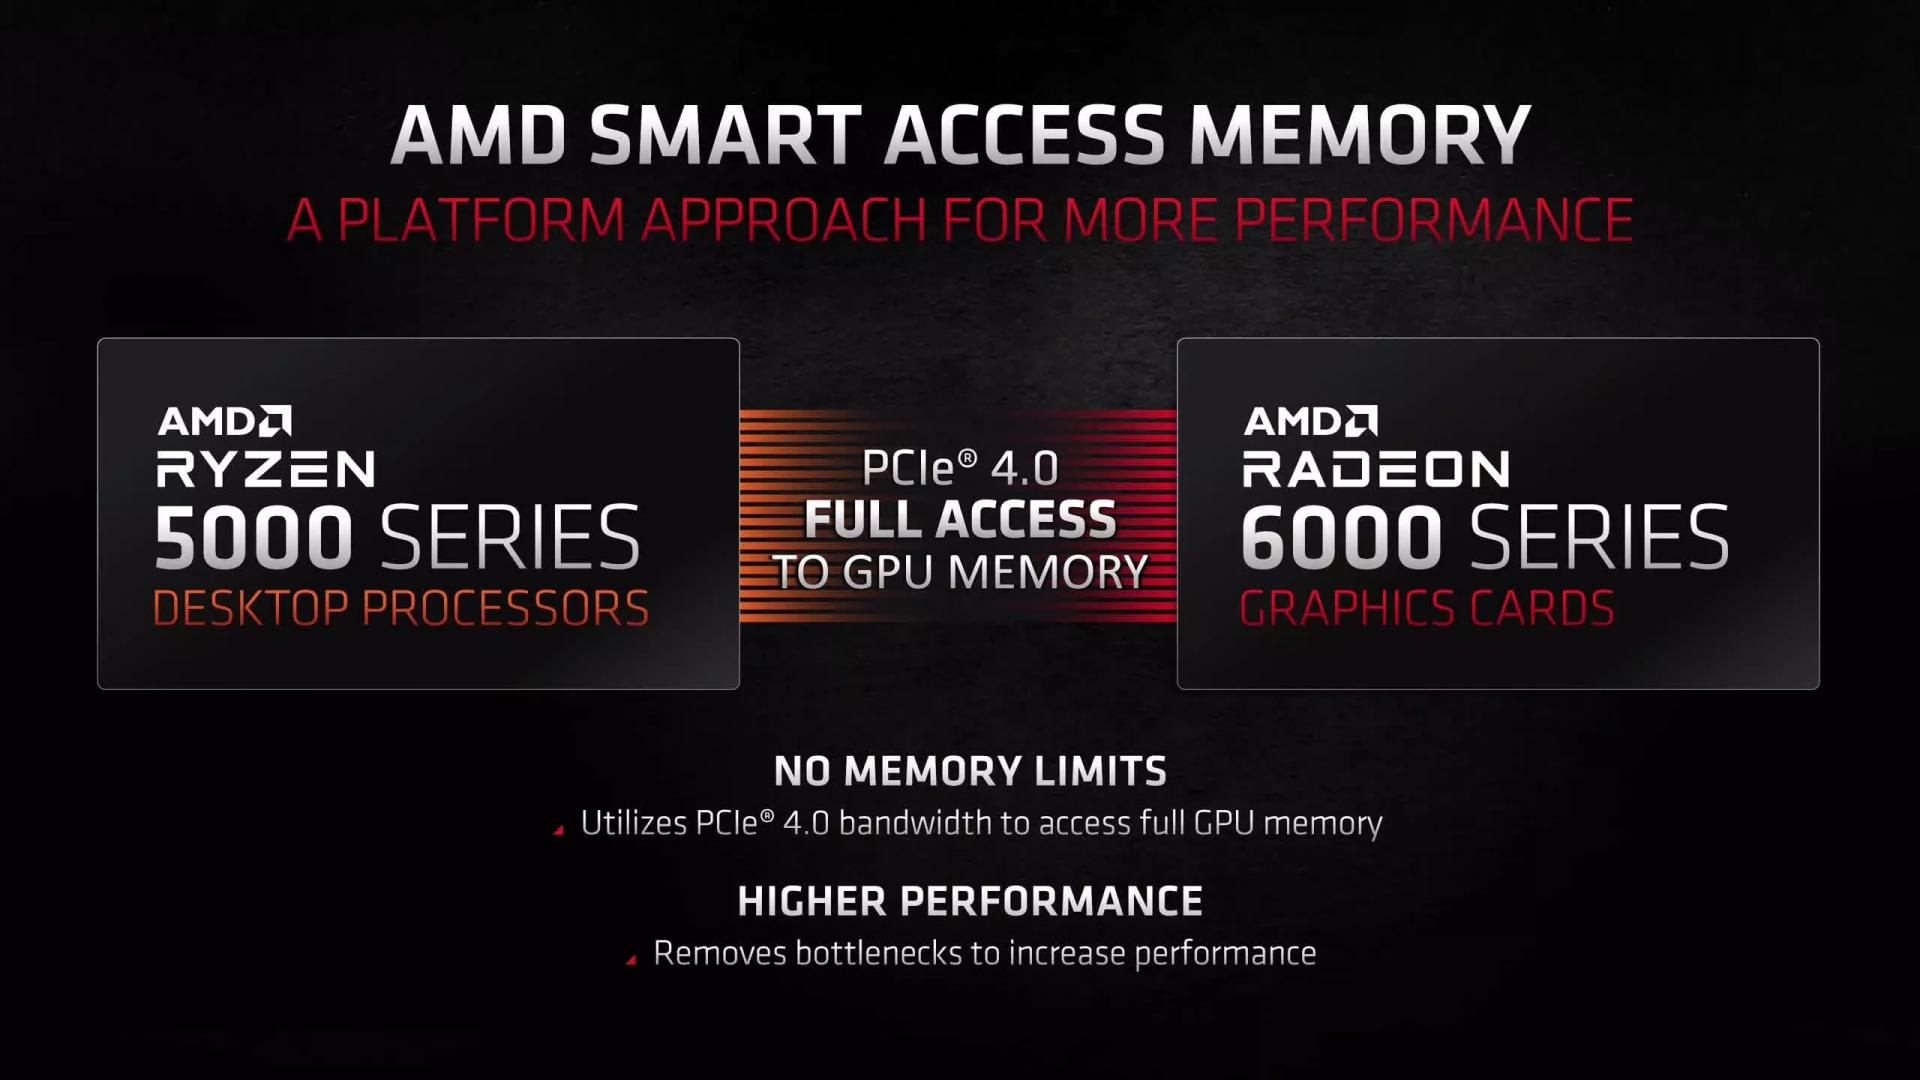 Появились результаты теста технологии доступа к памяти AMD Smart Access Memory (SAM)